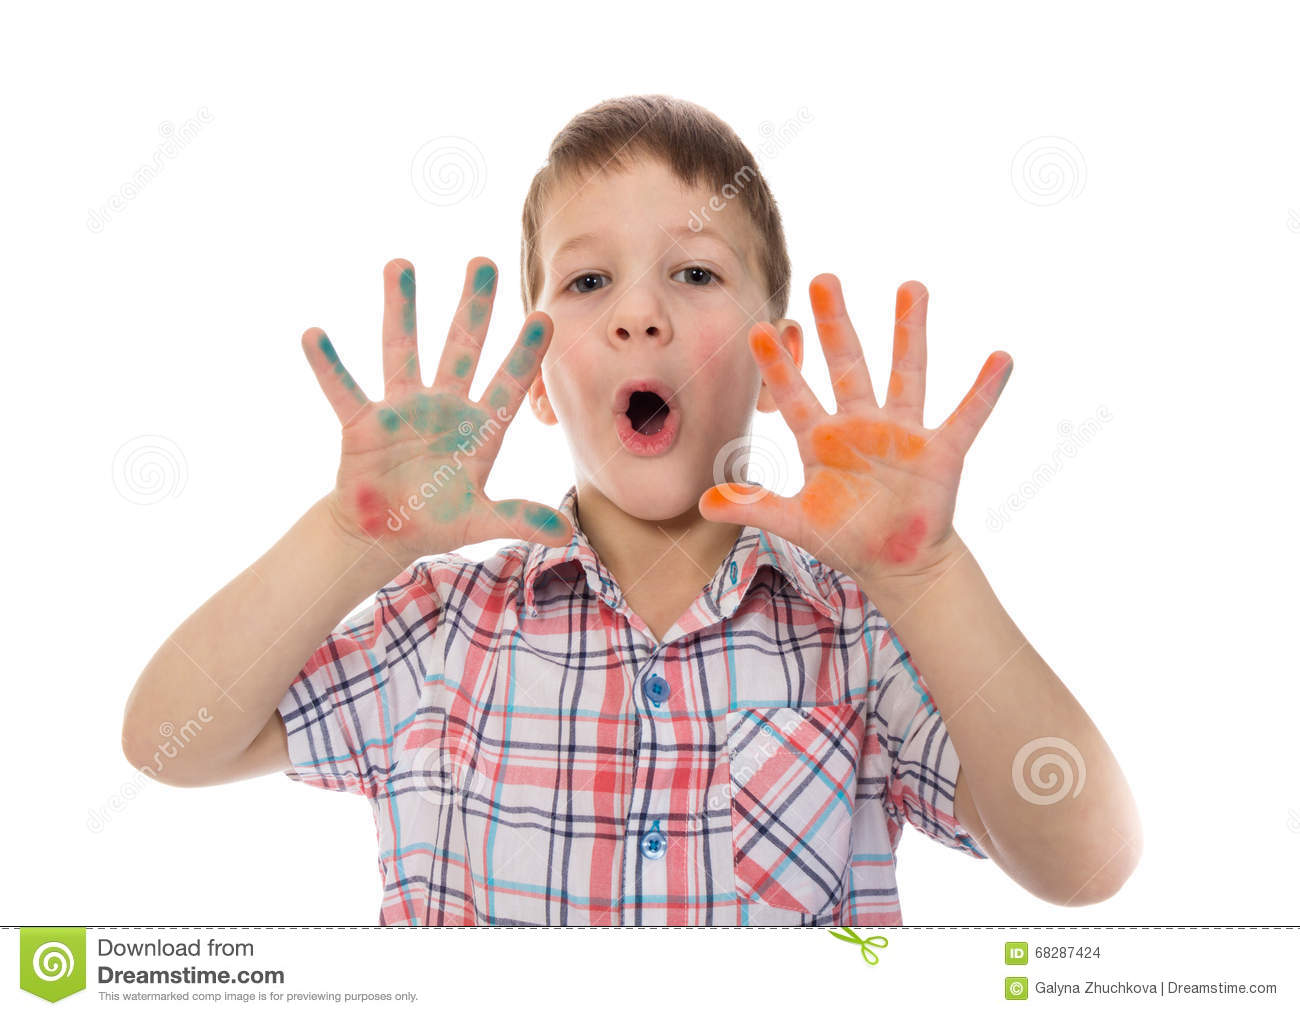 Singing boy with colorful painted fingers spread